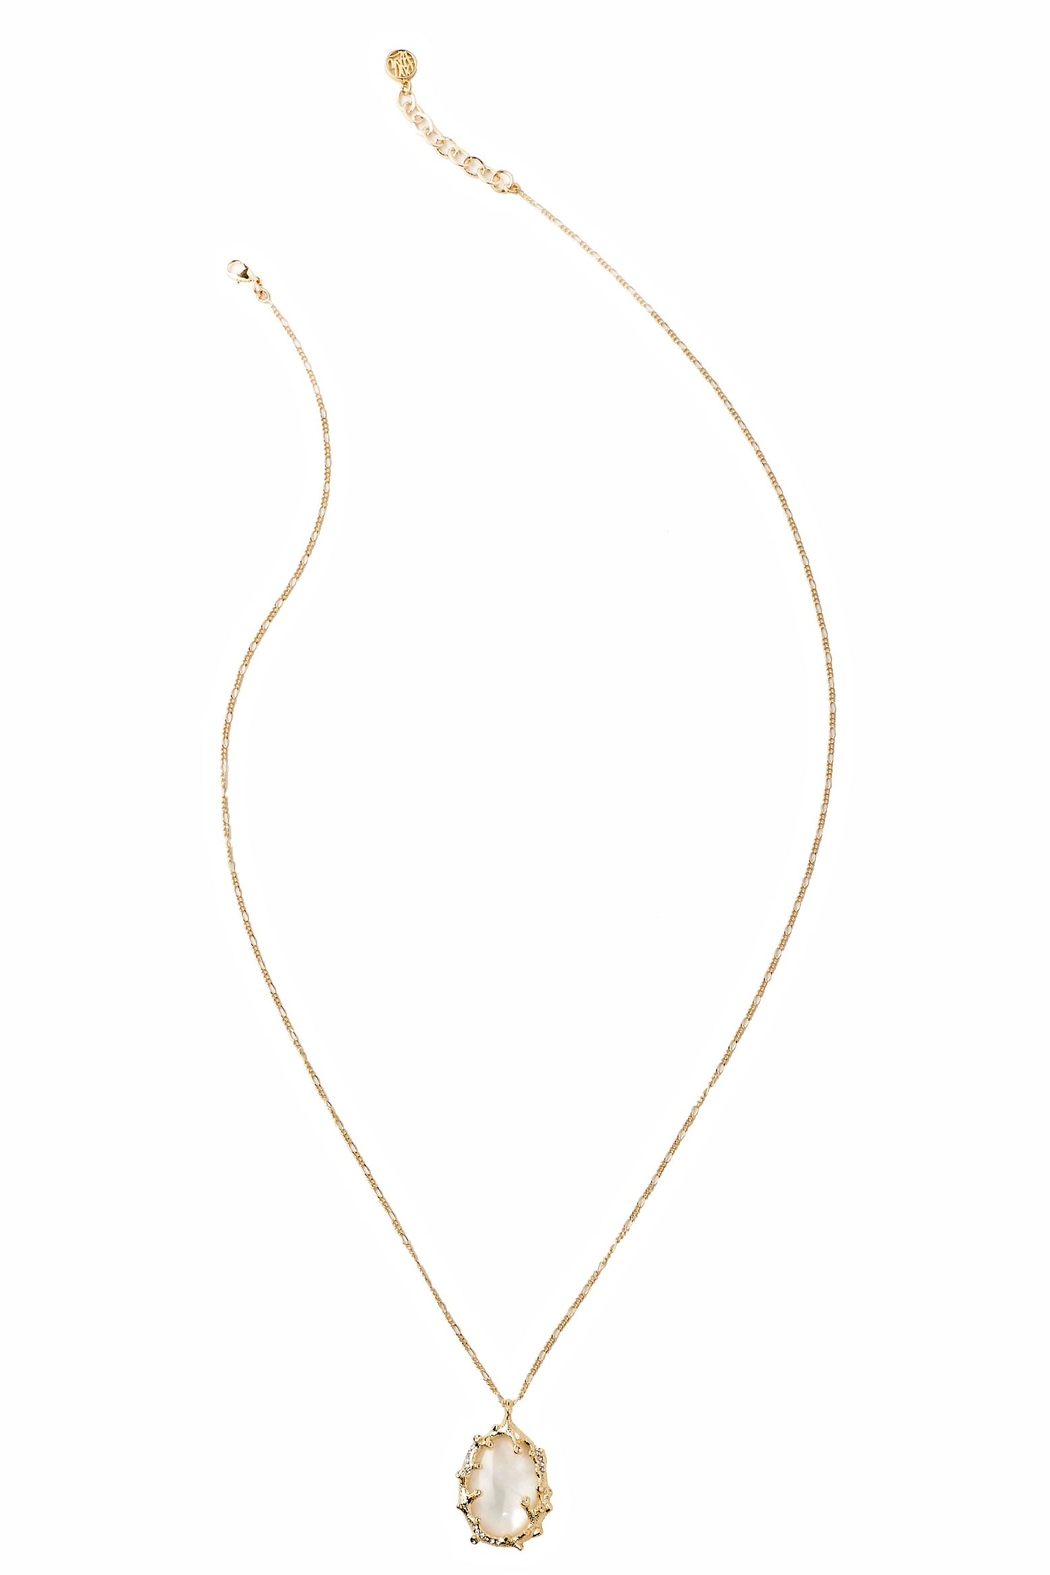 Lilly Pulitzer Lilly Pulitzer Long Charm Necklace Chain S1IMw